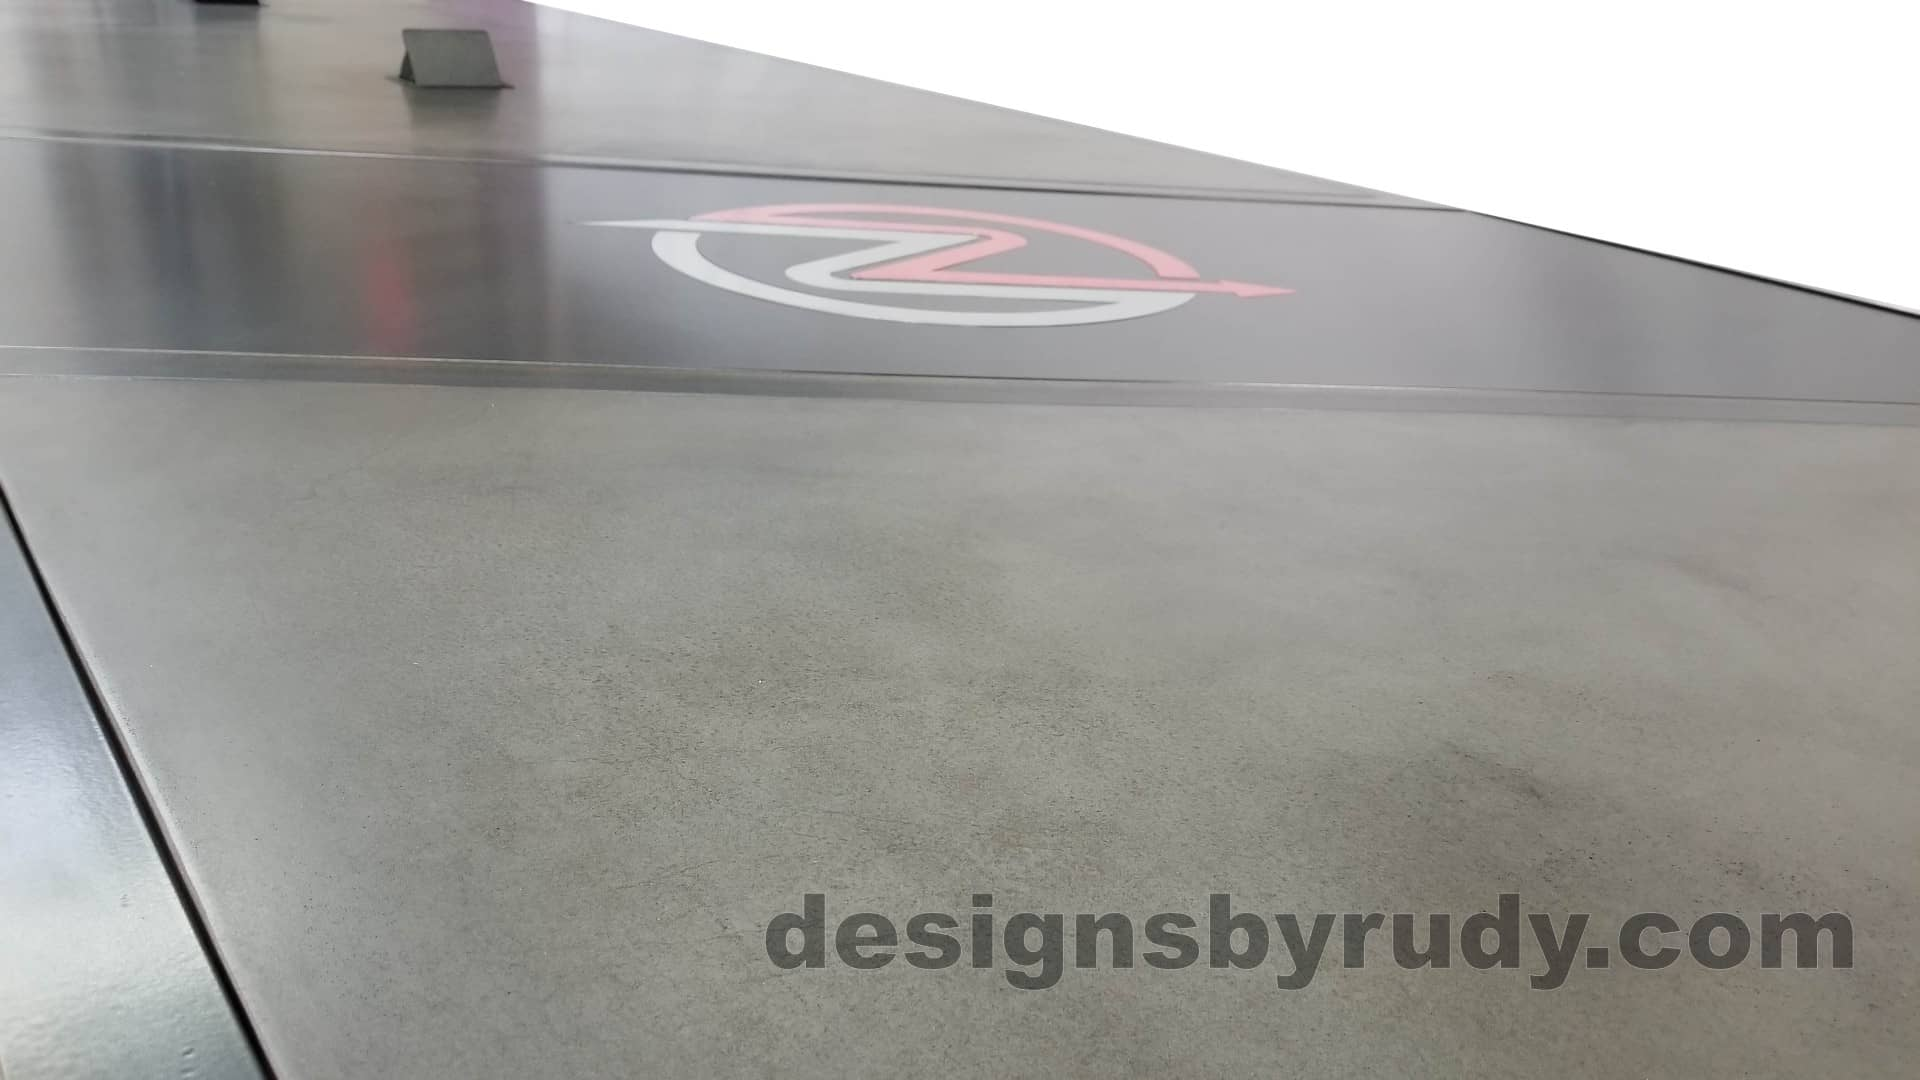 11 Steel and concrete conference table, design and fabrication by Designs by Rudy, low angle concrete view